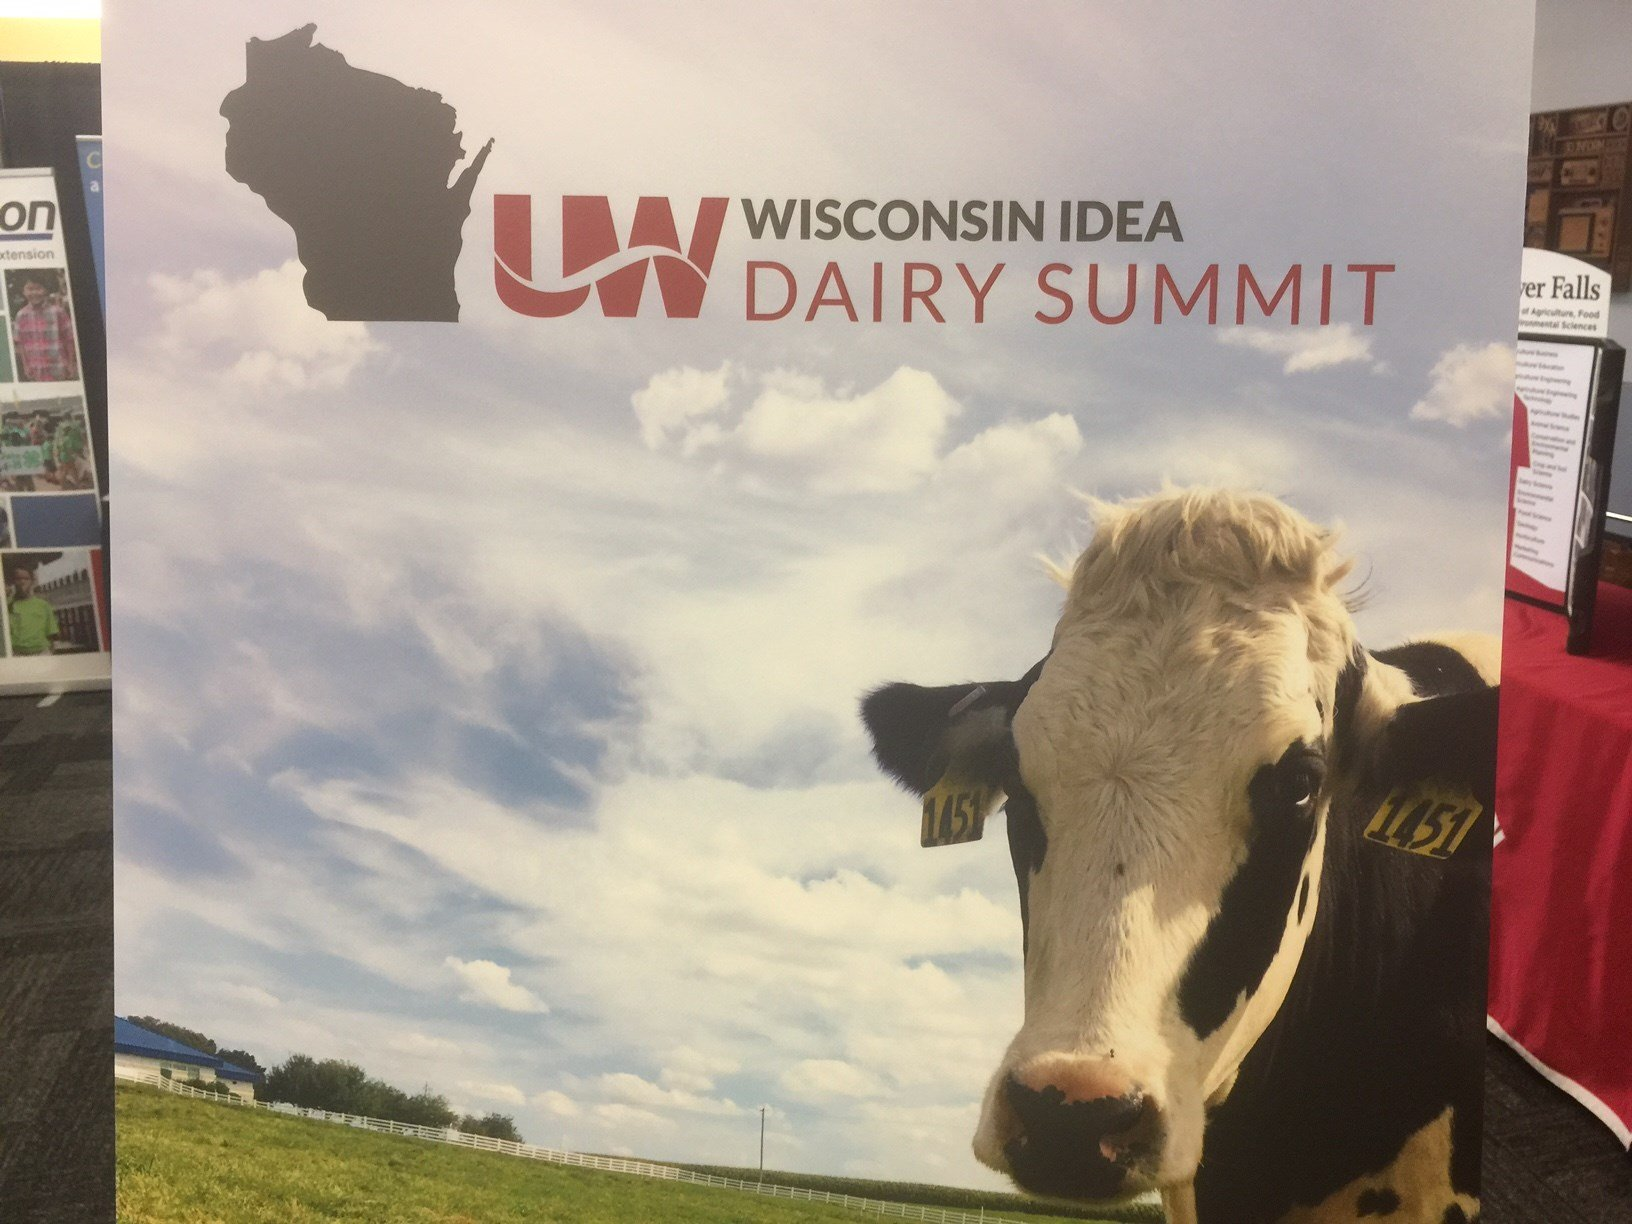 The Wisconsin Idea Dairy Summit addressed issues facing the dairy industry.